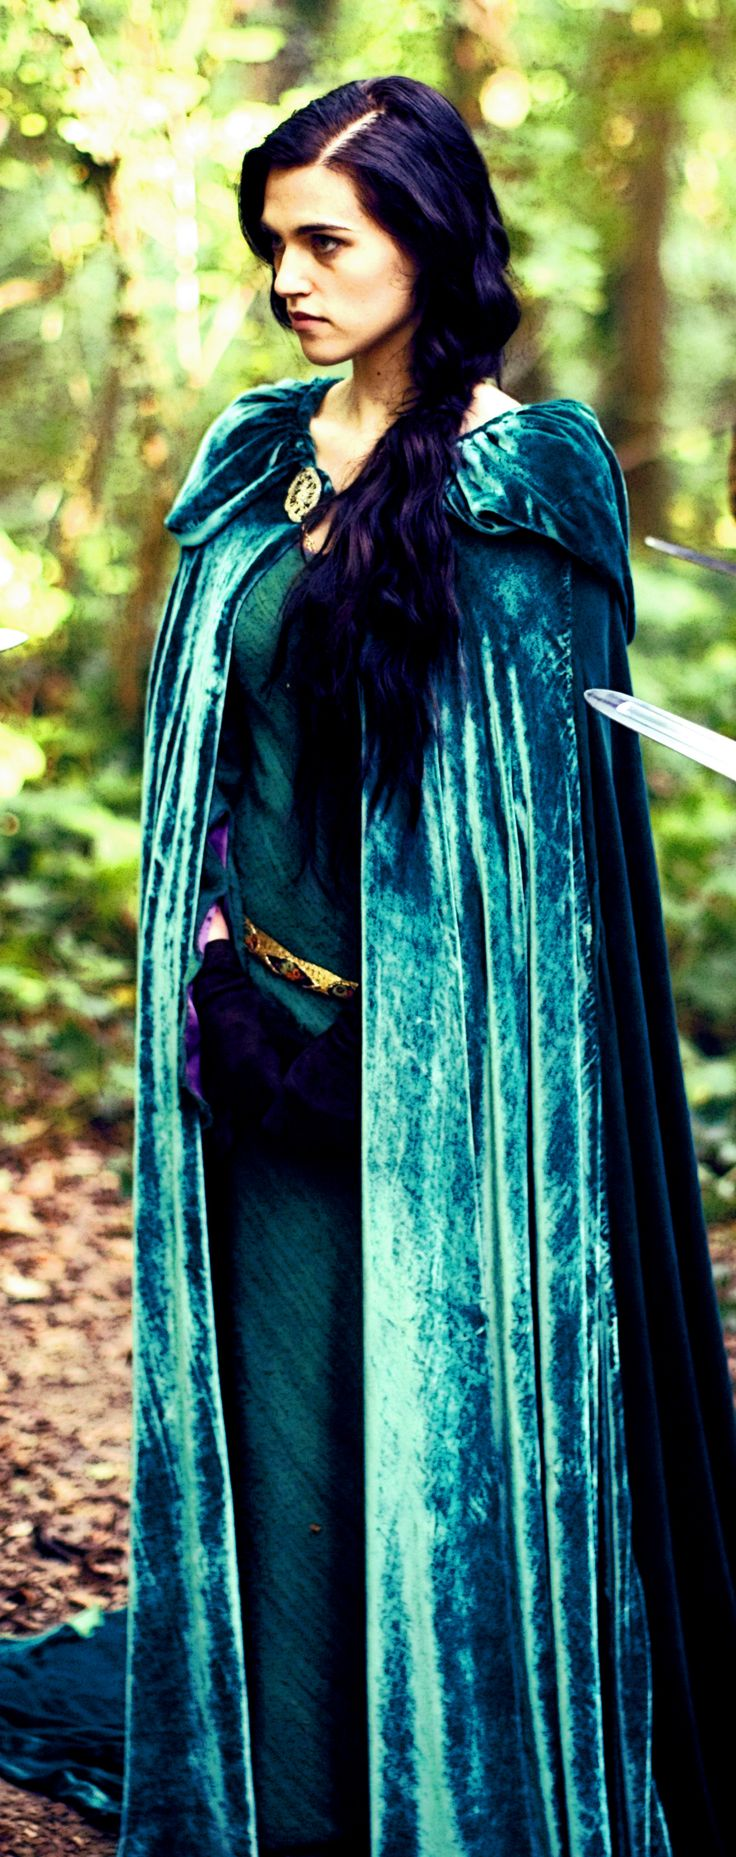 Katie McGrath as Morgana, in awesome cloak